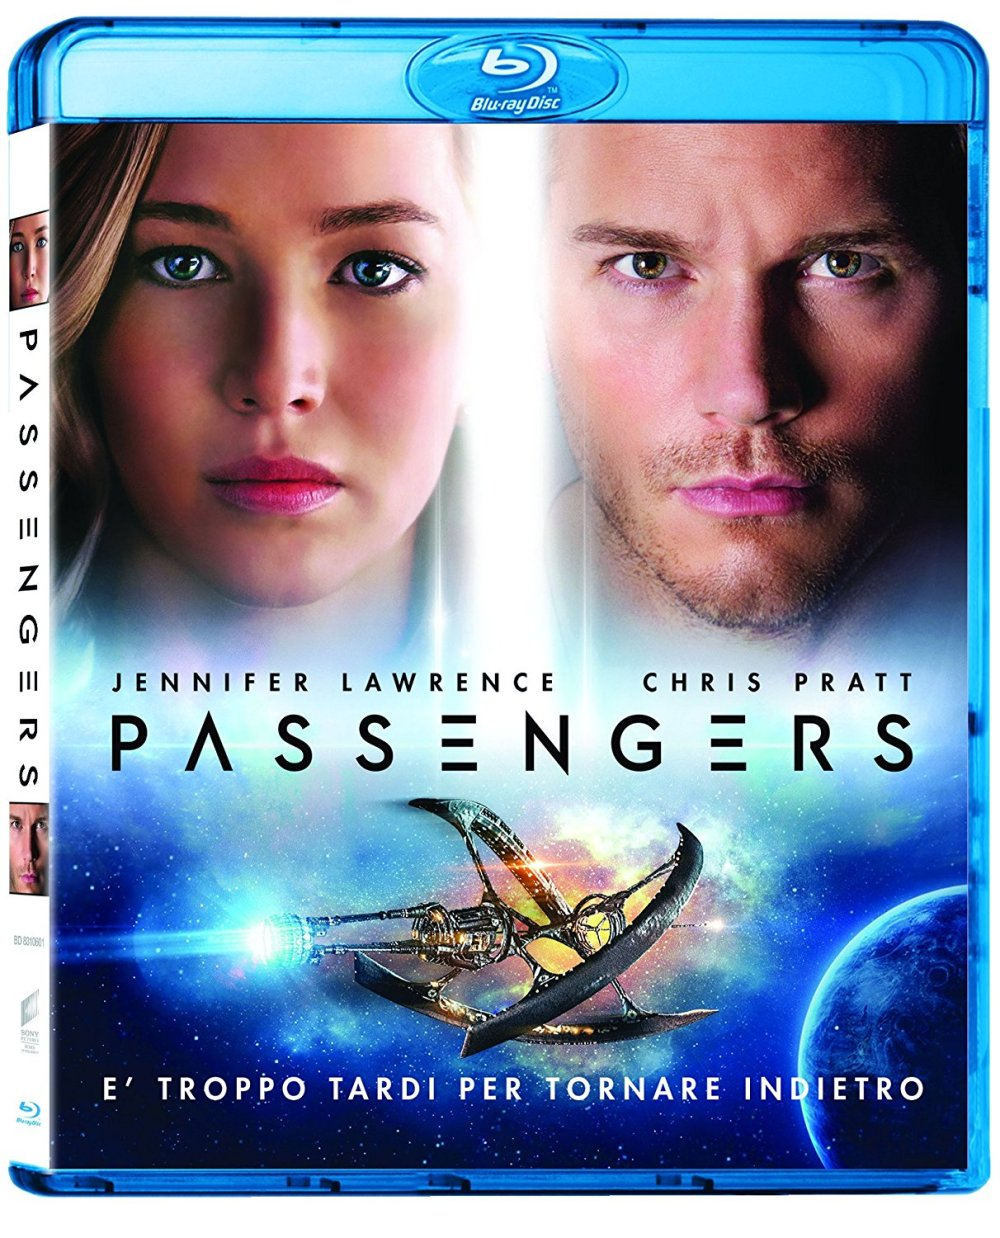 passengers blu ray cover amazon titanic_